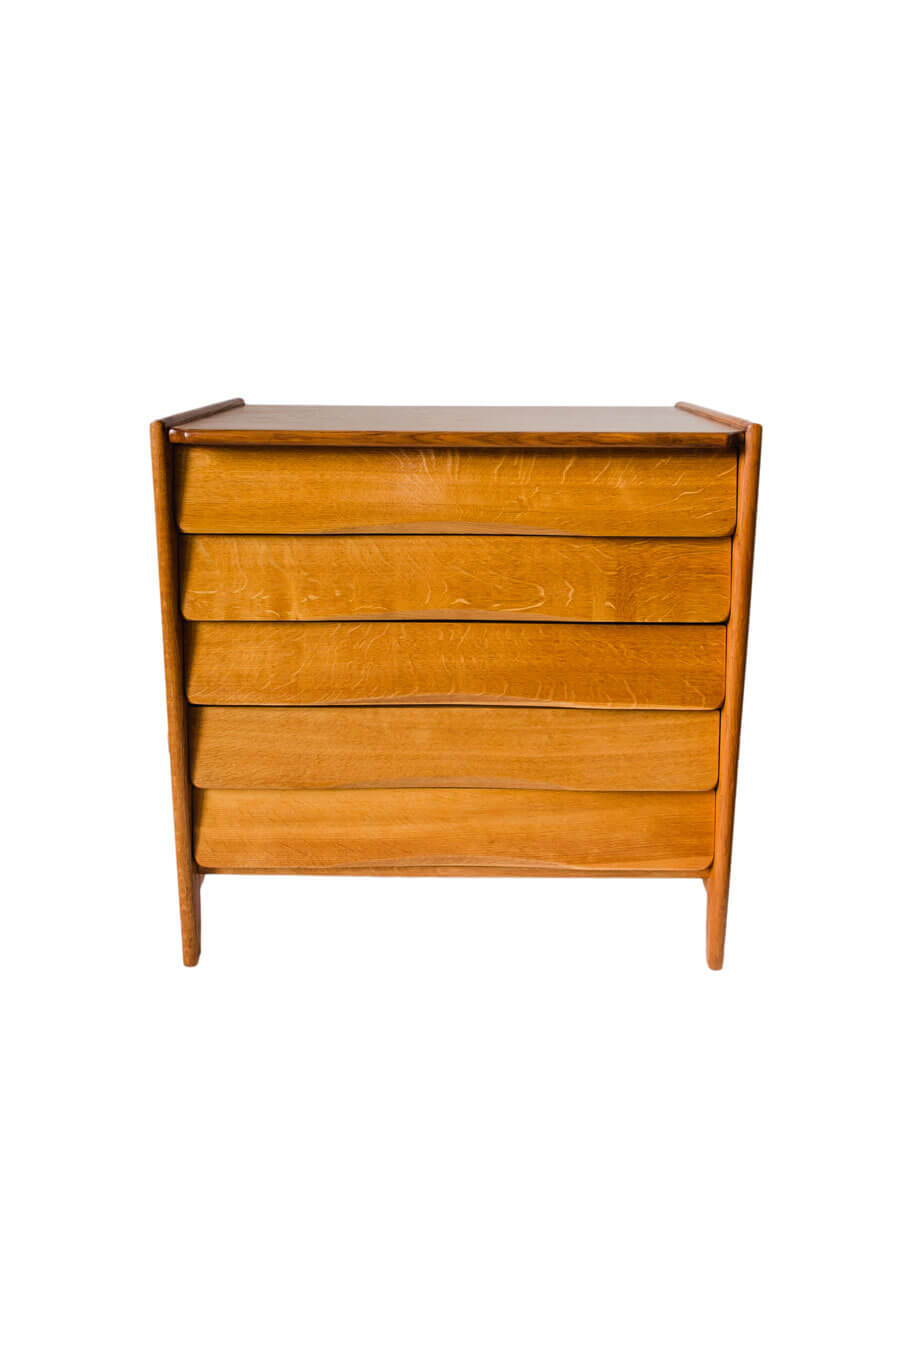 Chest of drawers designed by I. Sternińska for ŁAD Cooperative